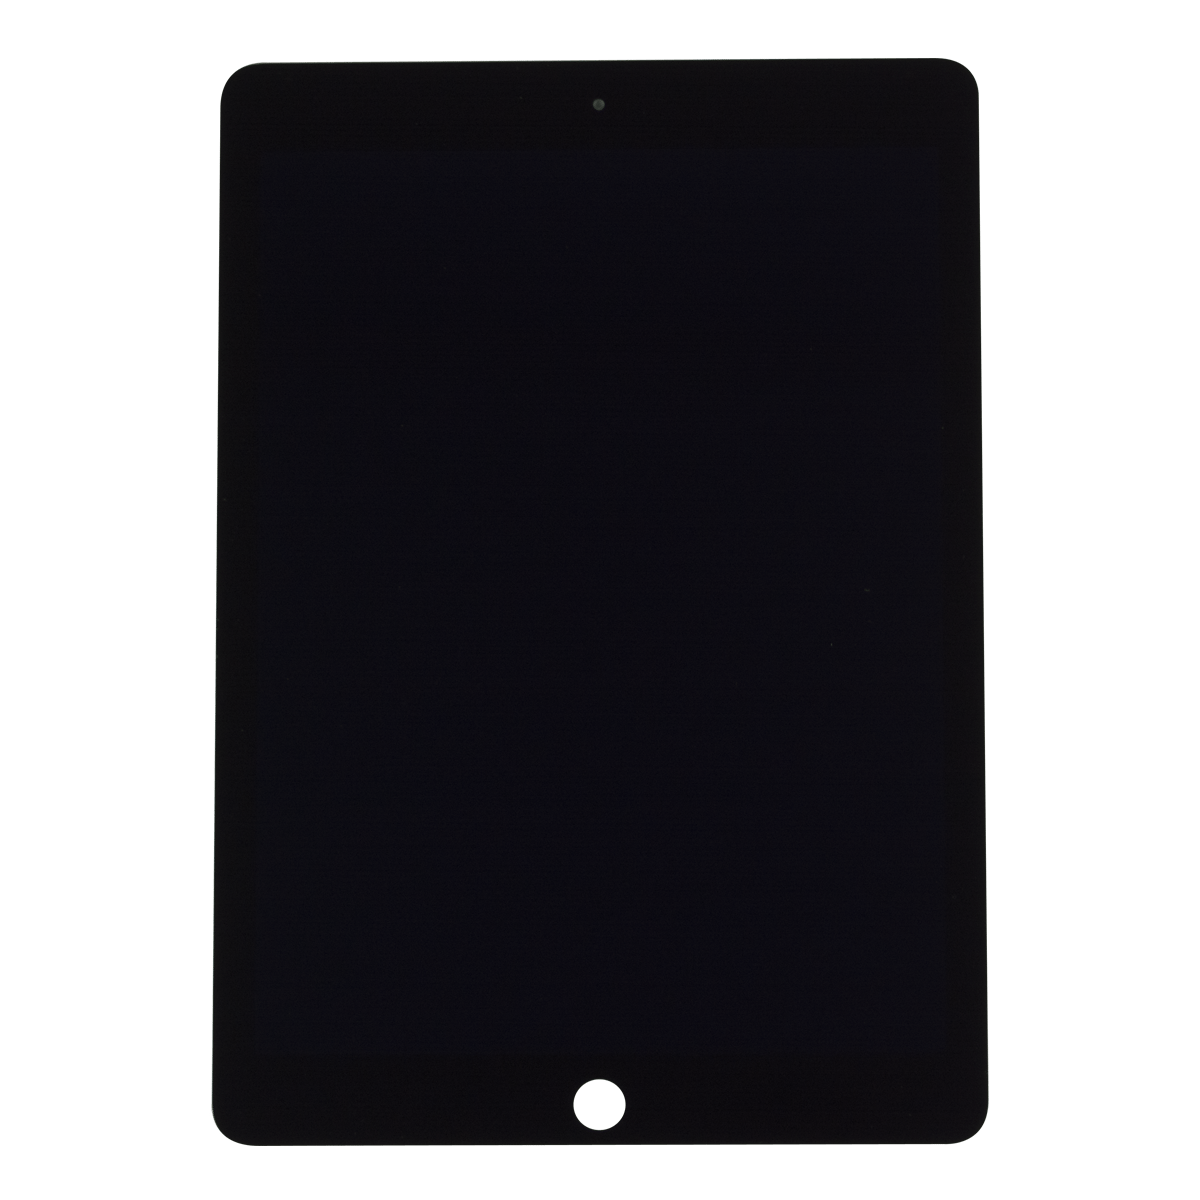 iPad Air 2 LCD and Touch Screen Replacement